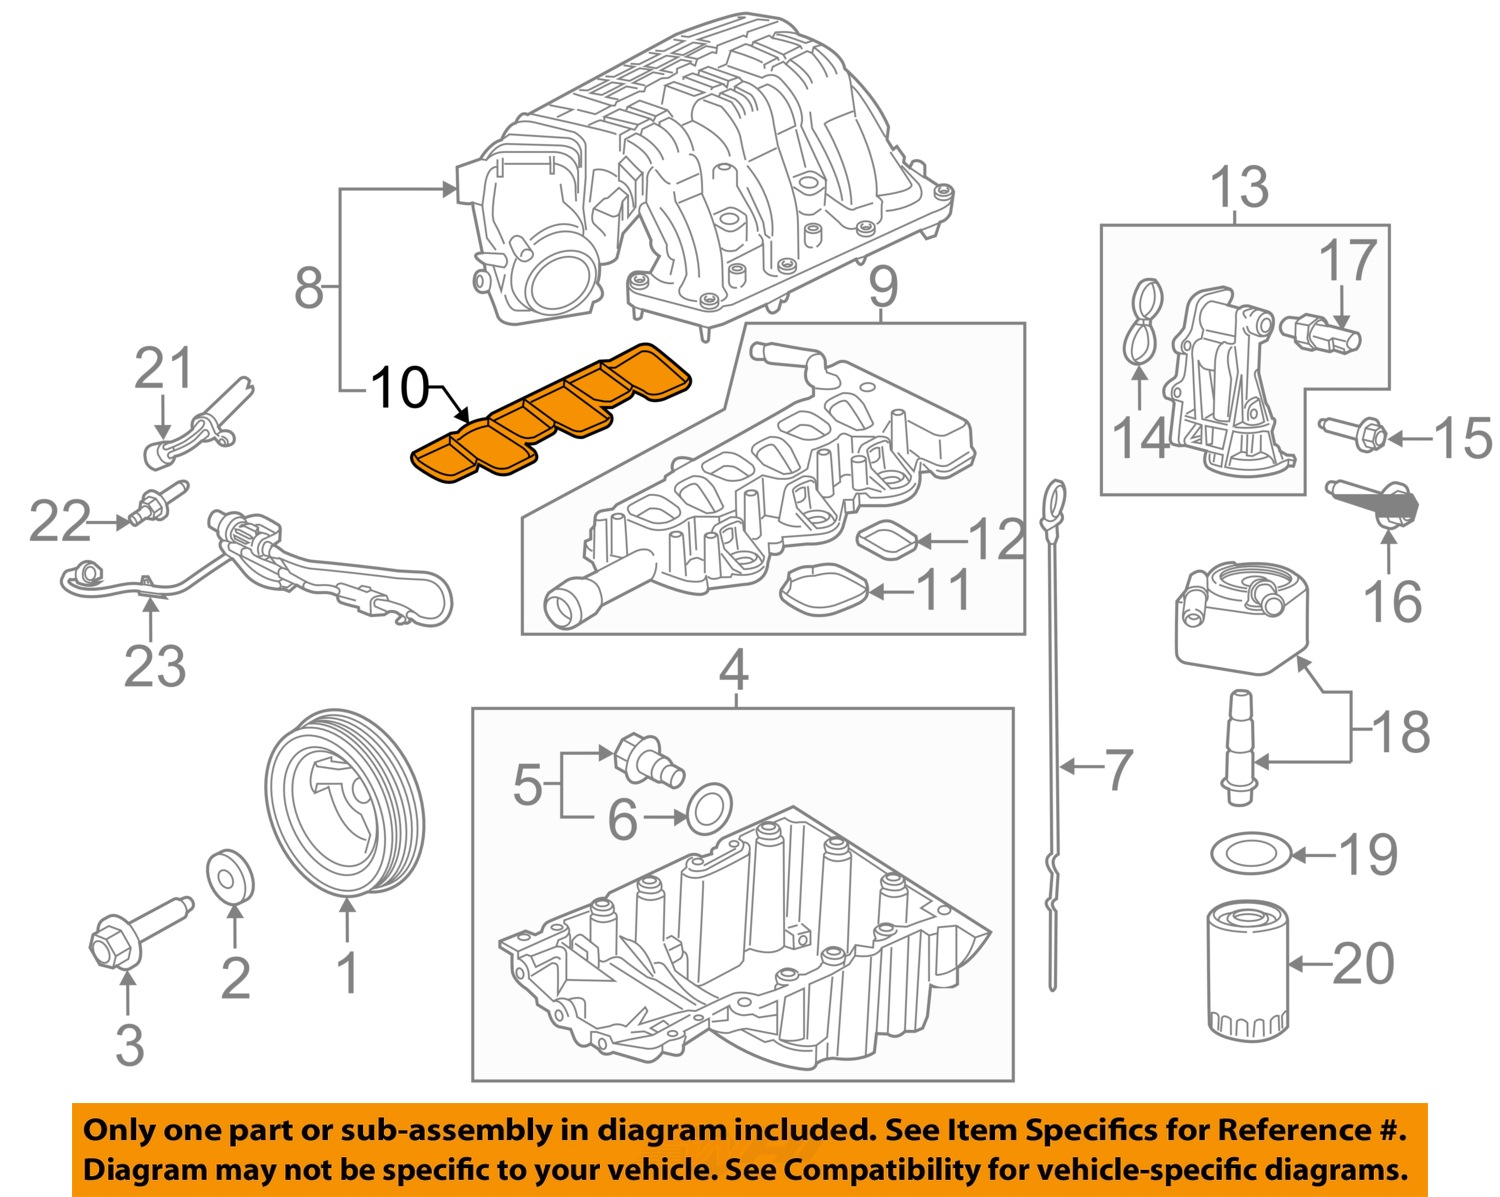 ford oem engine intake manifold gasket at4z 9h486 a factory sold rh ebay com d16y7 intake manifold diagram inlet manifold diagram